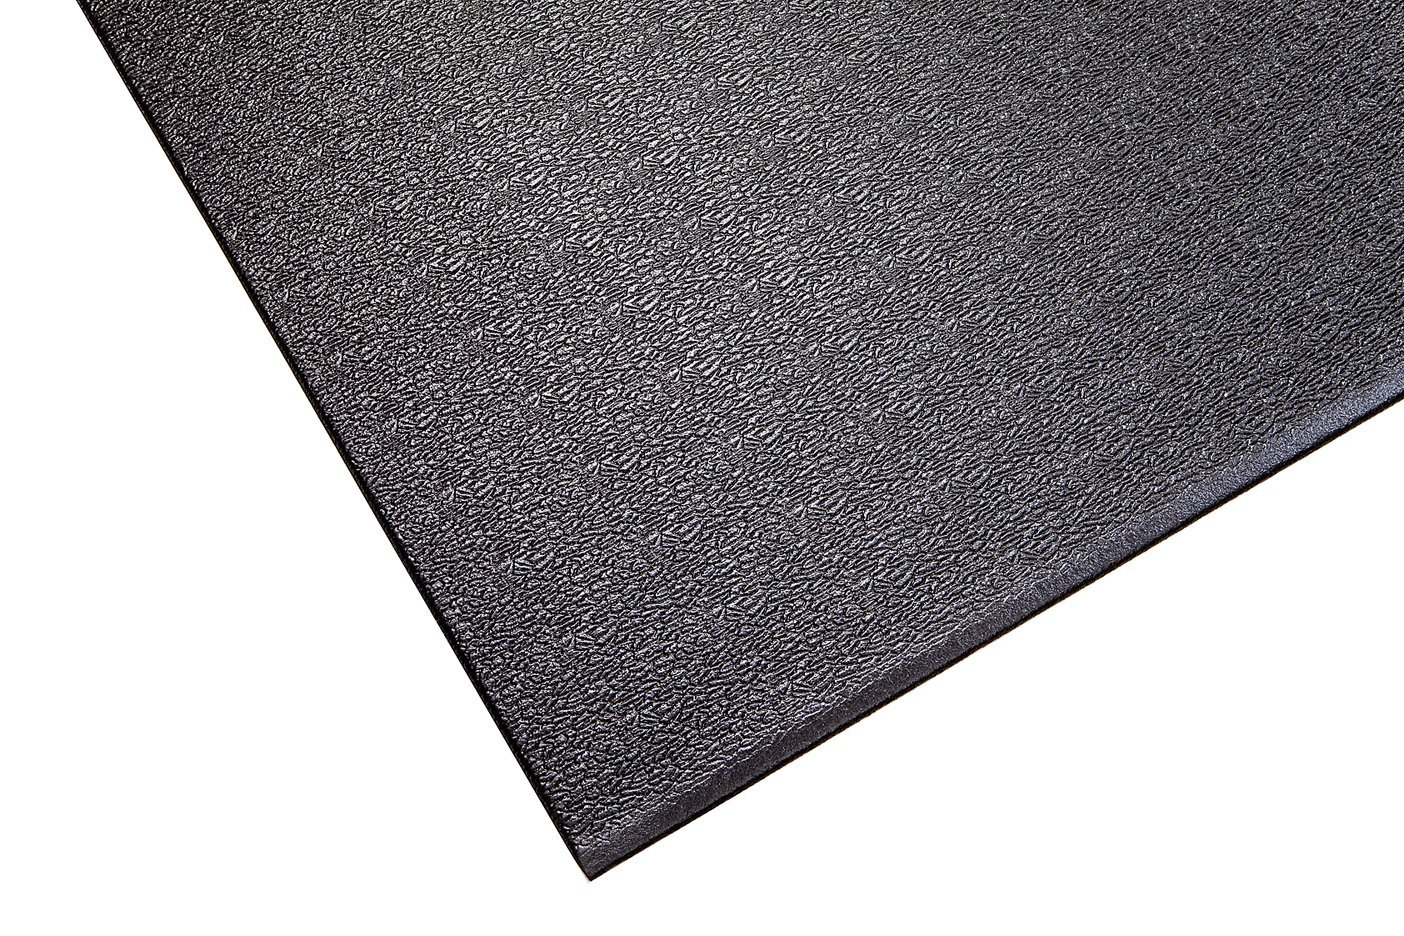 SuperMats High Density Commercial Grade Solid Equipment Mat 24GS Made in U.S.A. for Home Gyms Crossfit Training Flooring Weight Benches (Fоur Расk)